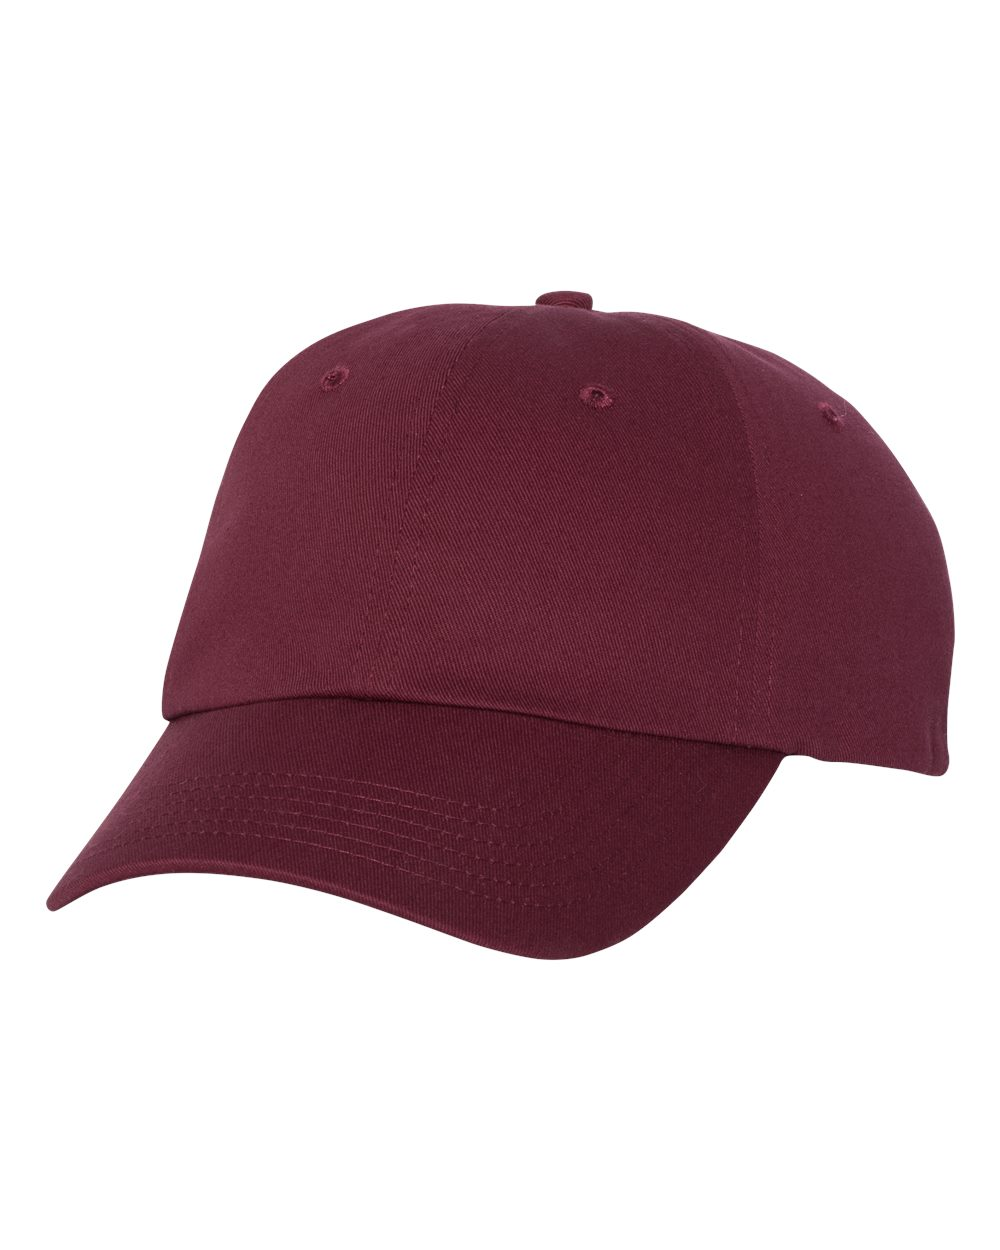 Valucap VC650 - Chino Unstructured Cap